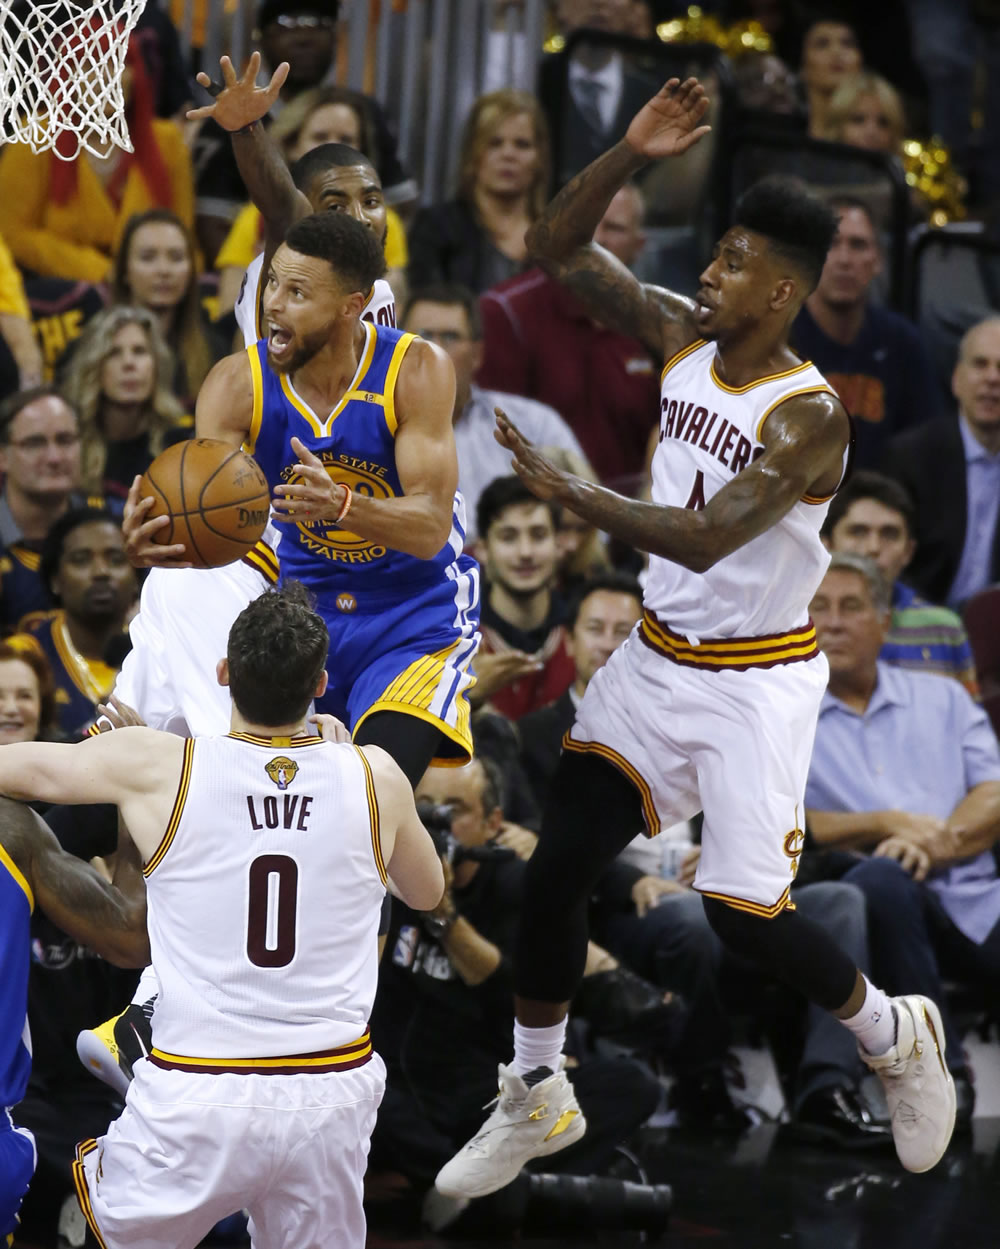 "<div class=""meta image-caption""><div class=""origin-logo origin-image none""><span>none</span></div><span class=""caption-text"">Steph Curry flies above Kevin Love during game three of the NBA Finals on Monday, June 6, 2017. (KGO-TV)</span></div>"